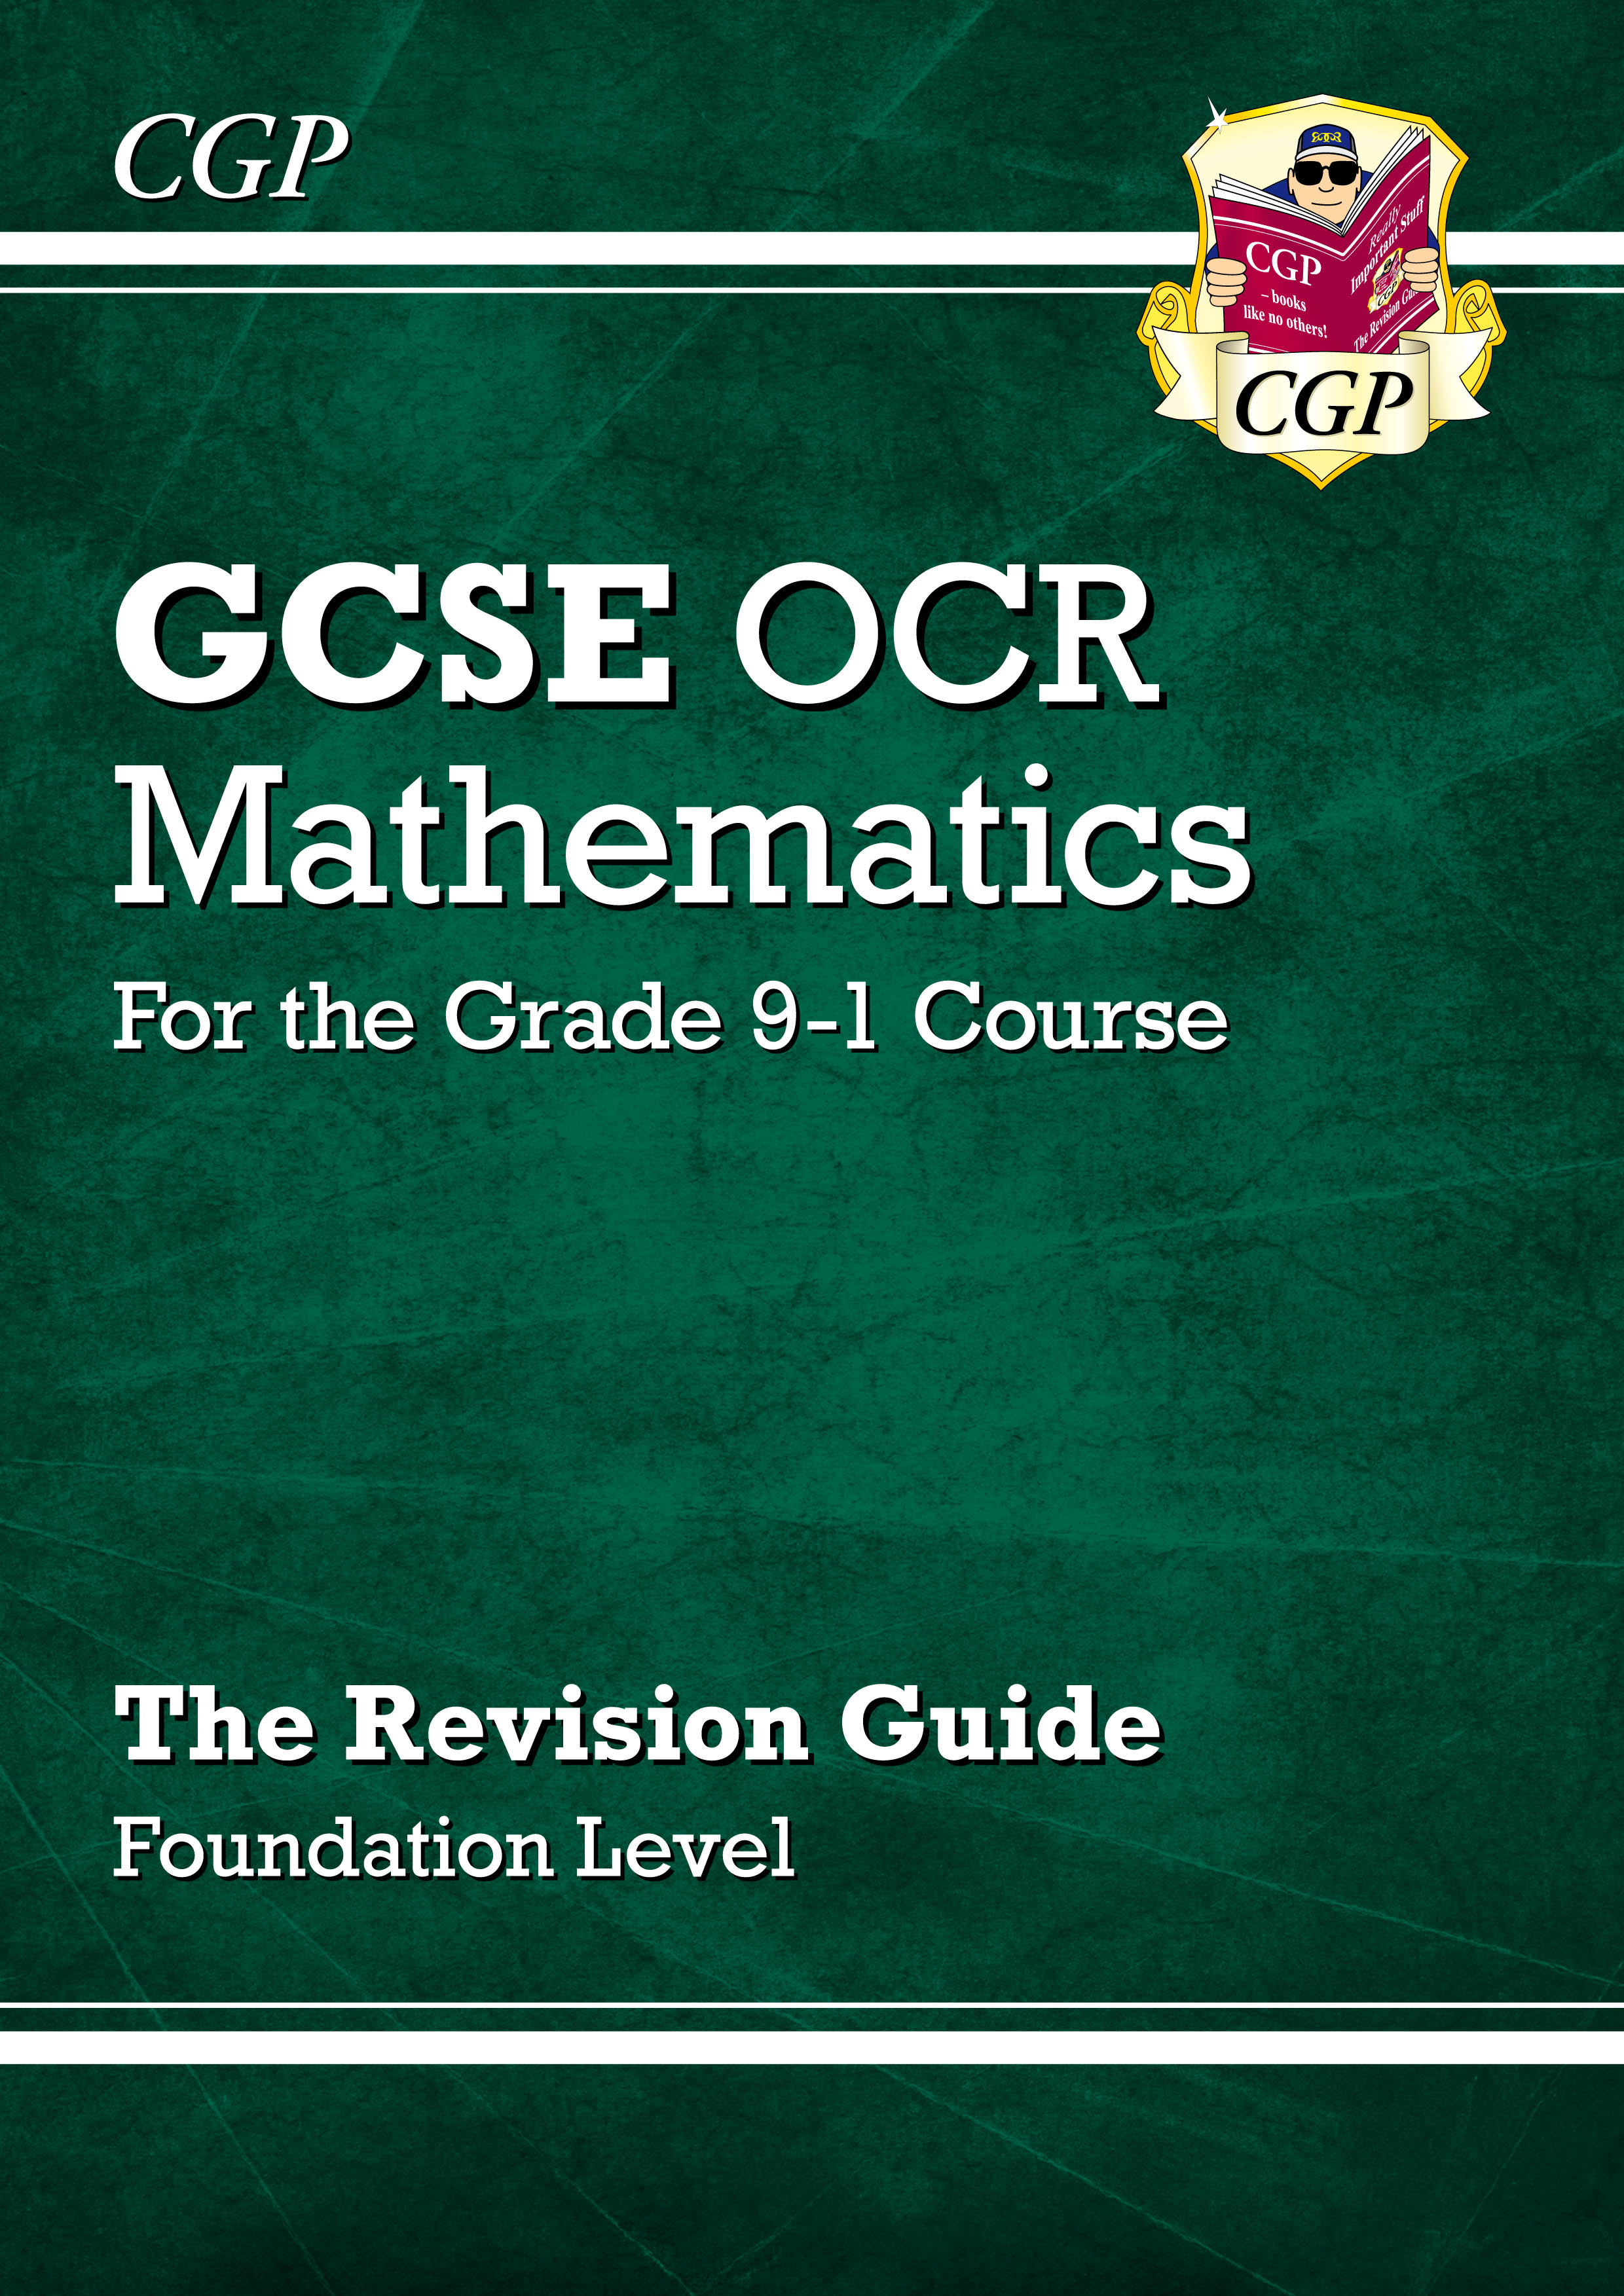 MCFR46DK - GCSE Maths OCR Revision Guide: Foundation - for the Grade 9-1 Course